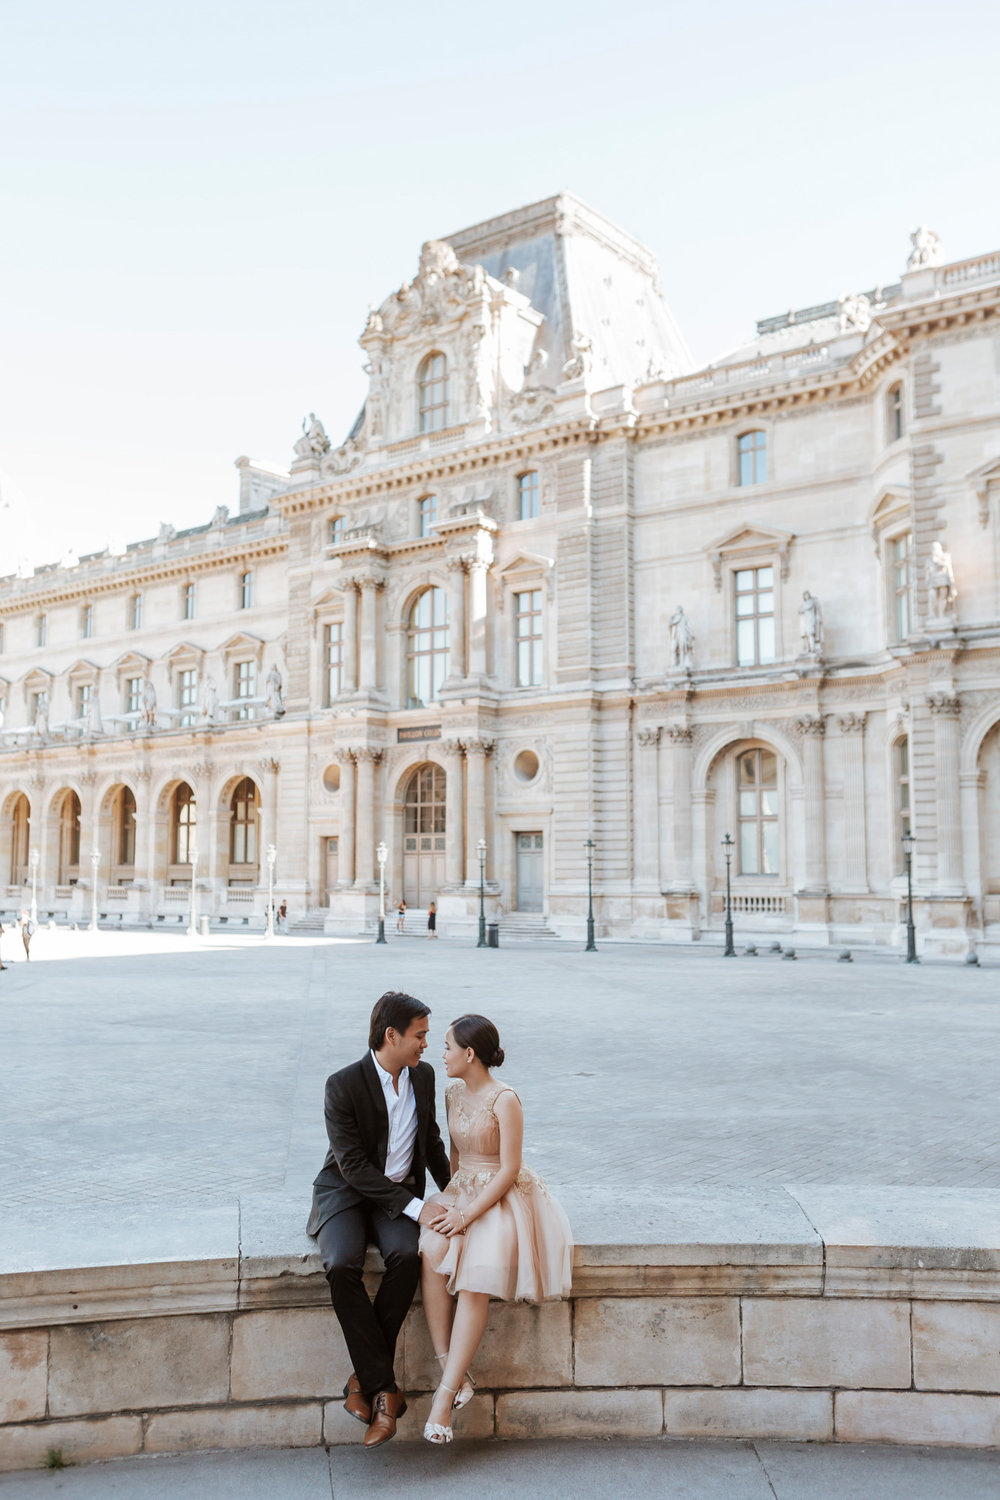 Pre-wedding couple portrait sitting in the courtyard of the Louvre Museum captured by Paris Photographer Federico Guendel